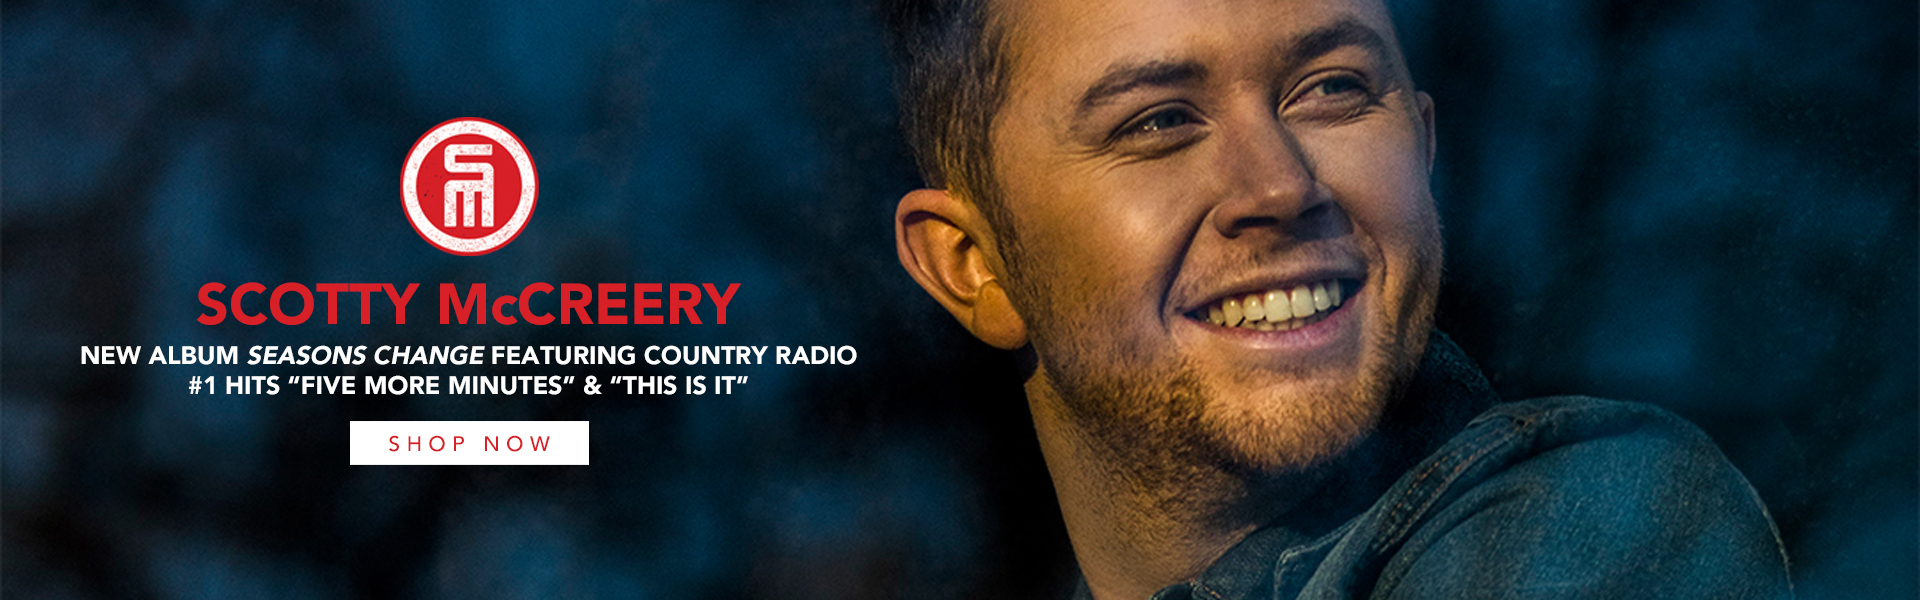 Shop Scotty McCreery Now!